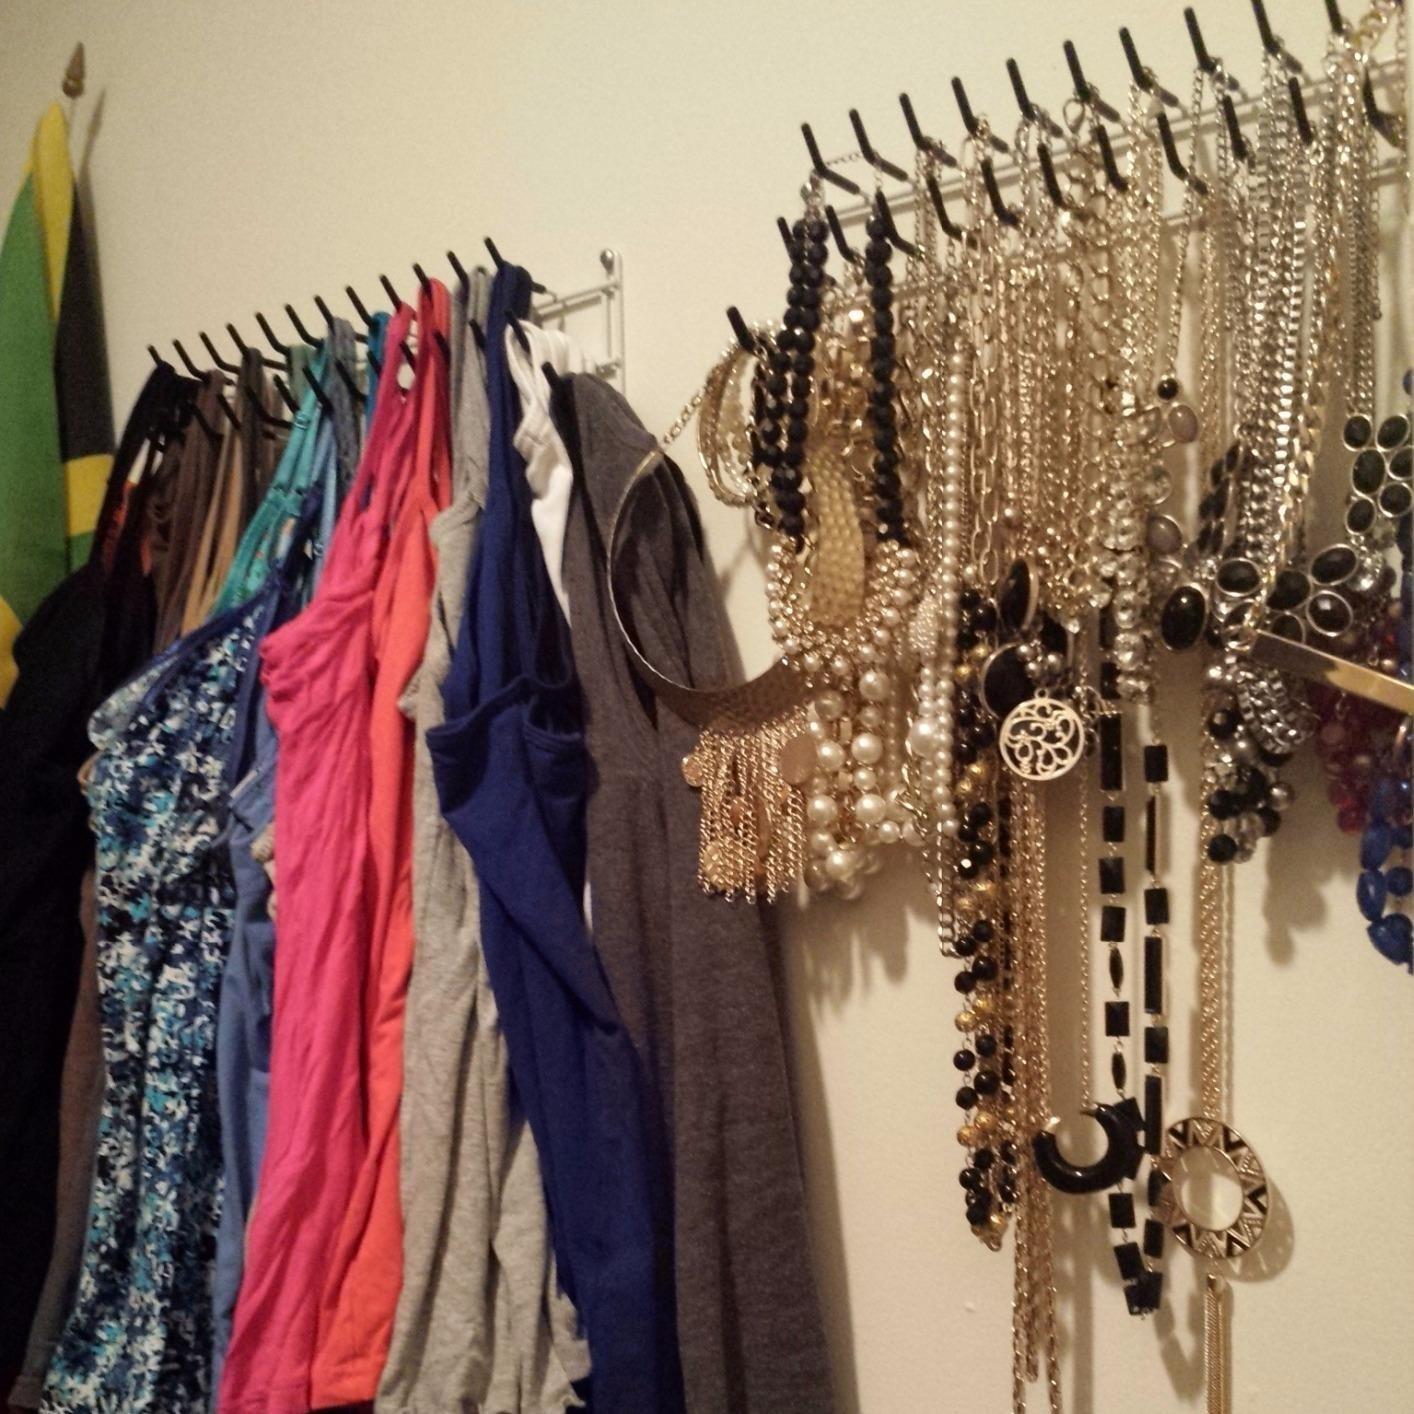 Reviewer photo of two of the racks on a wall, one with tank tops hanging from it and the other with necklaces and jewelry hanging from it